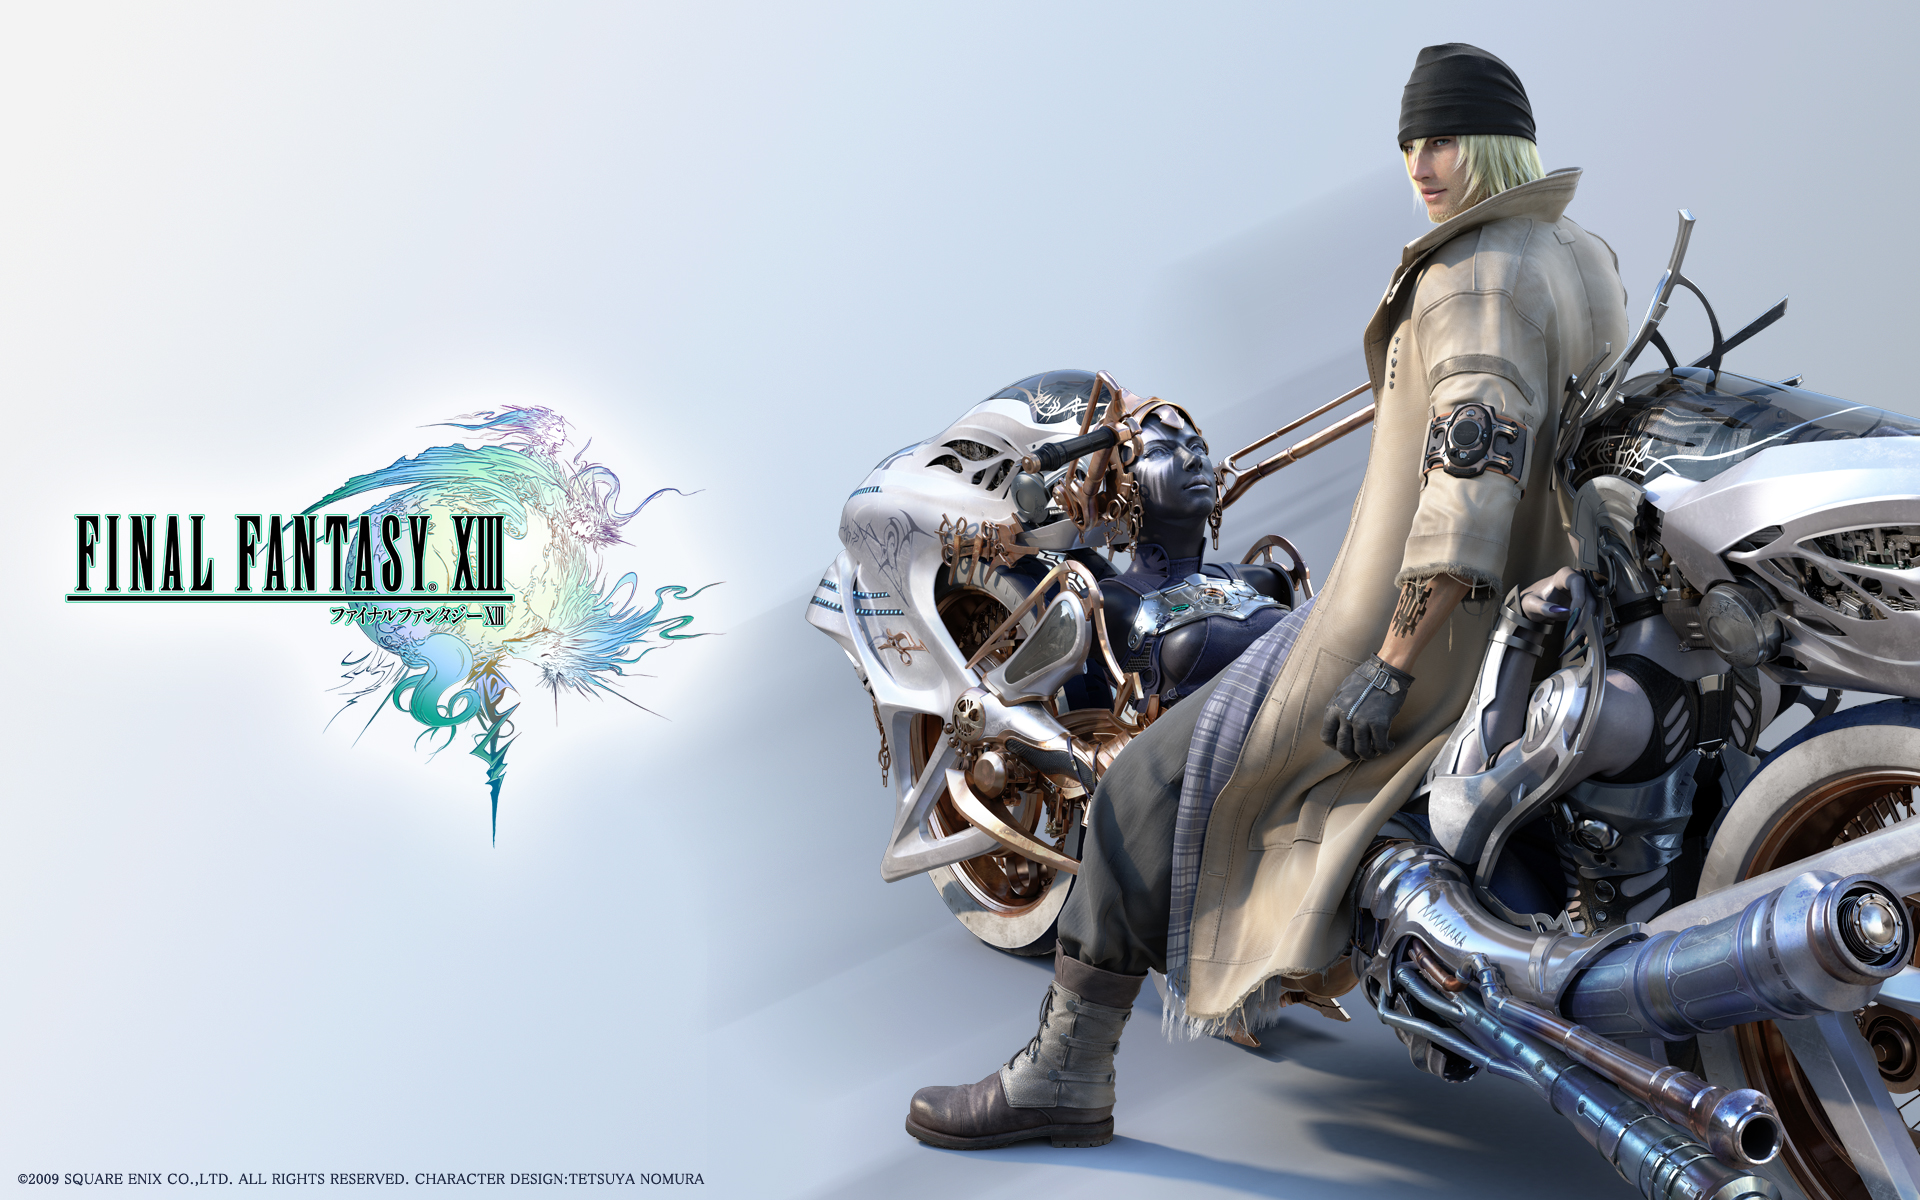 100 Wallpapers de anime HD FFXIII-Sn_1920_1200